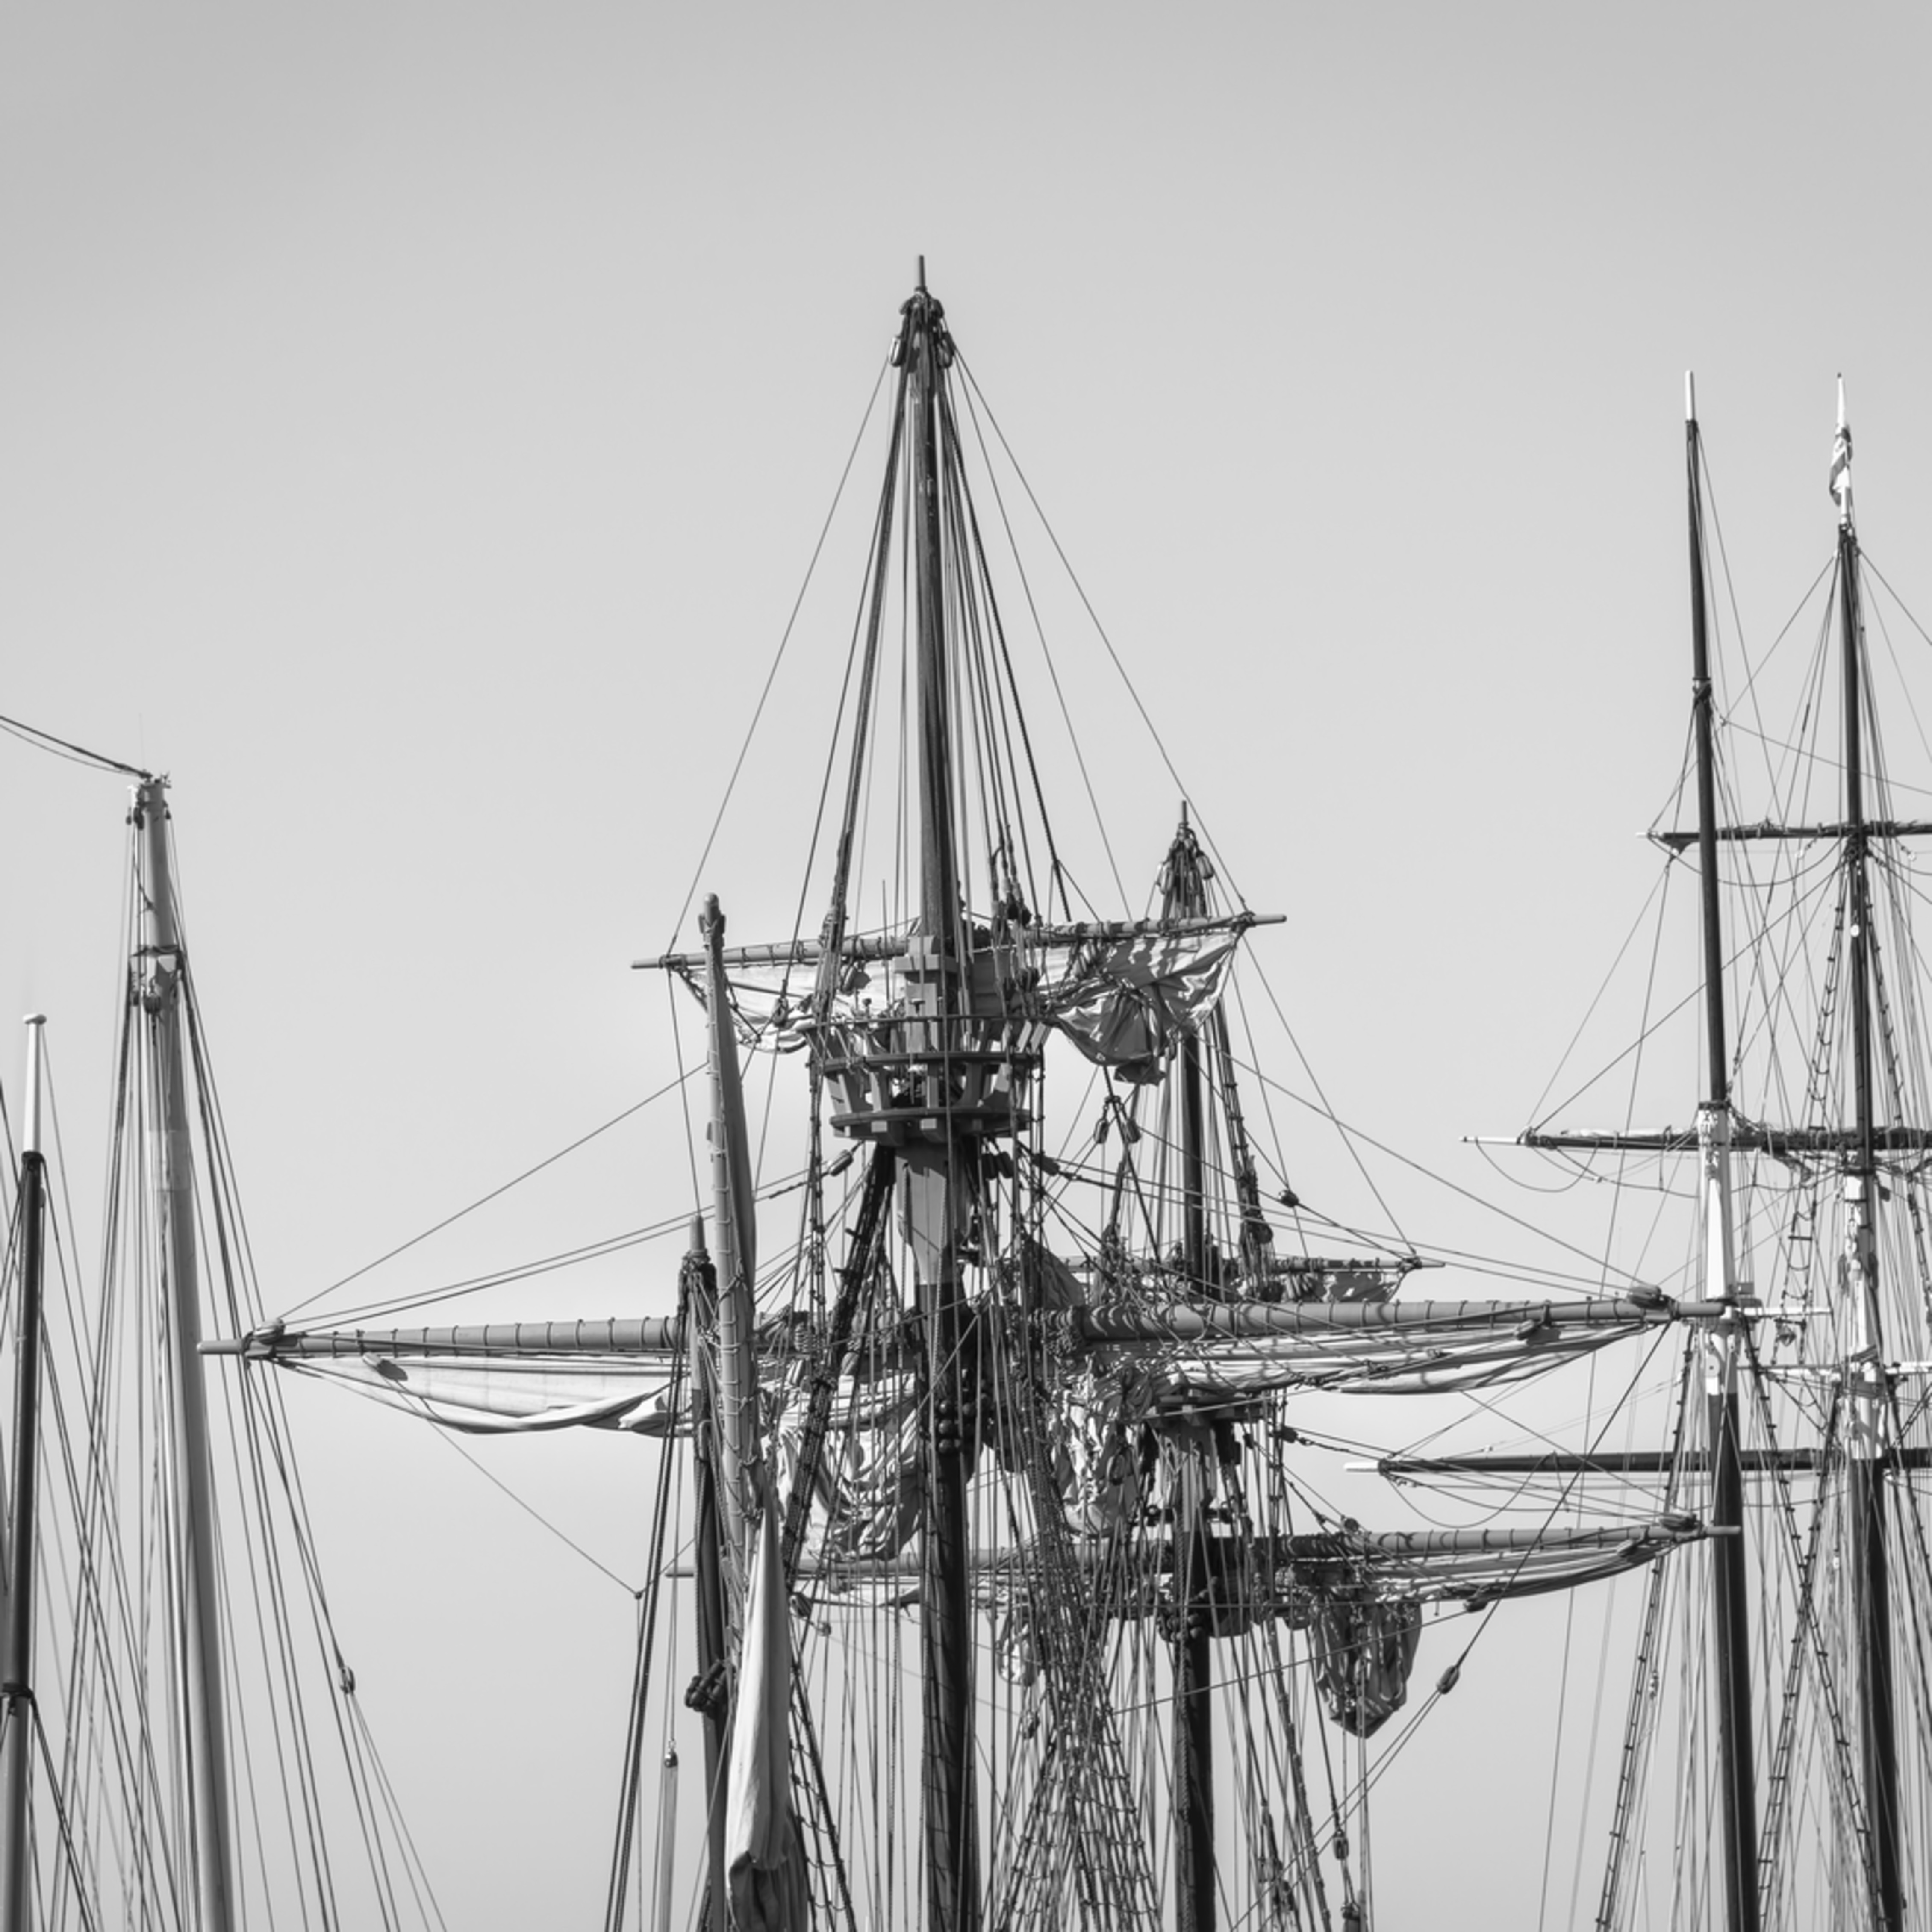 Schooner galleon and topsail schooner rigs wwjshf